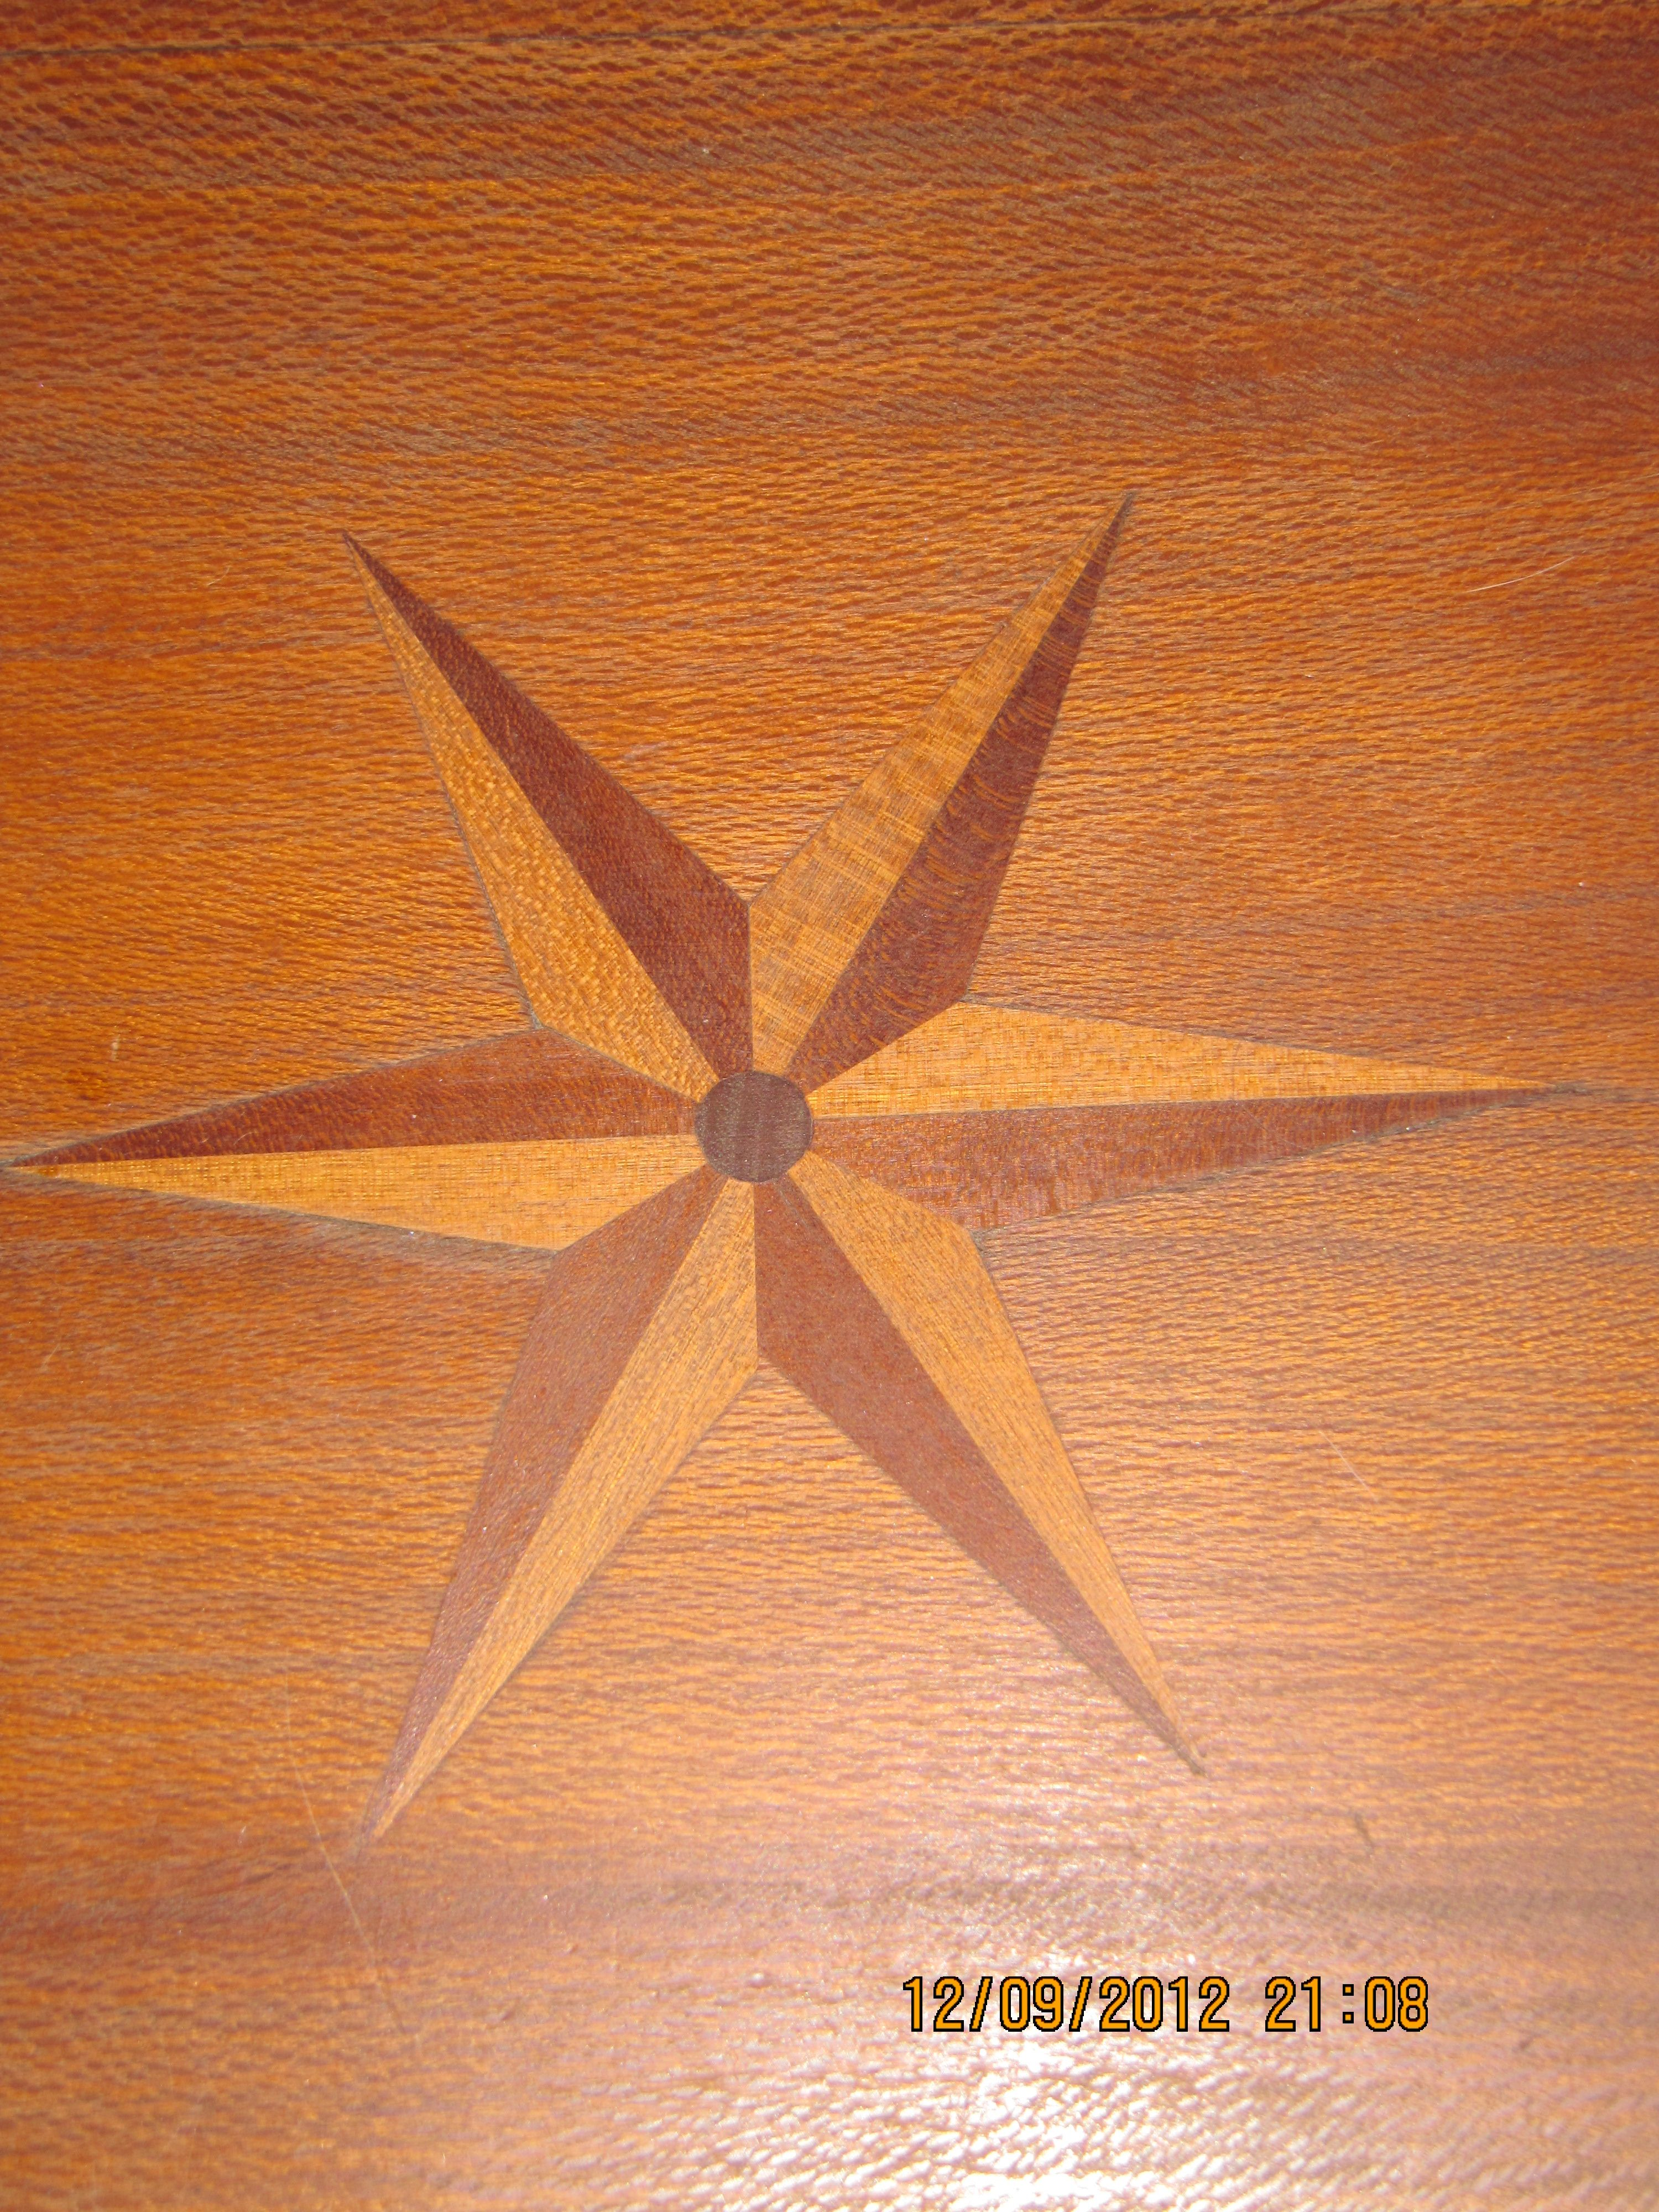 top furniture makers. Hard To Believe The Early German Furniture Makers In New Braunfels Could Produce Such Intricate Work With Only Basic Hand Tools. This Is Inlaid Top Of